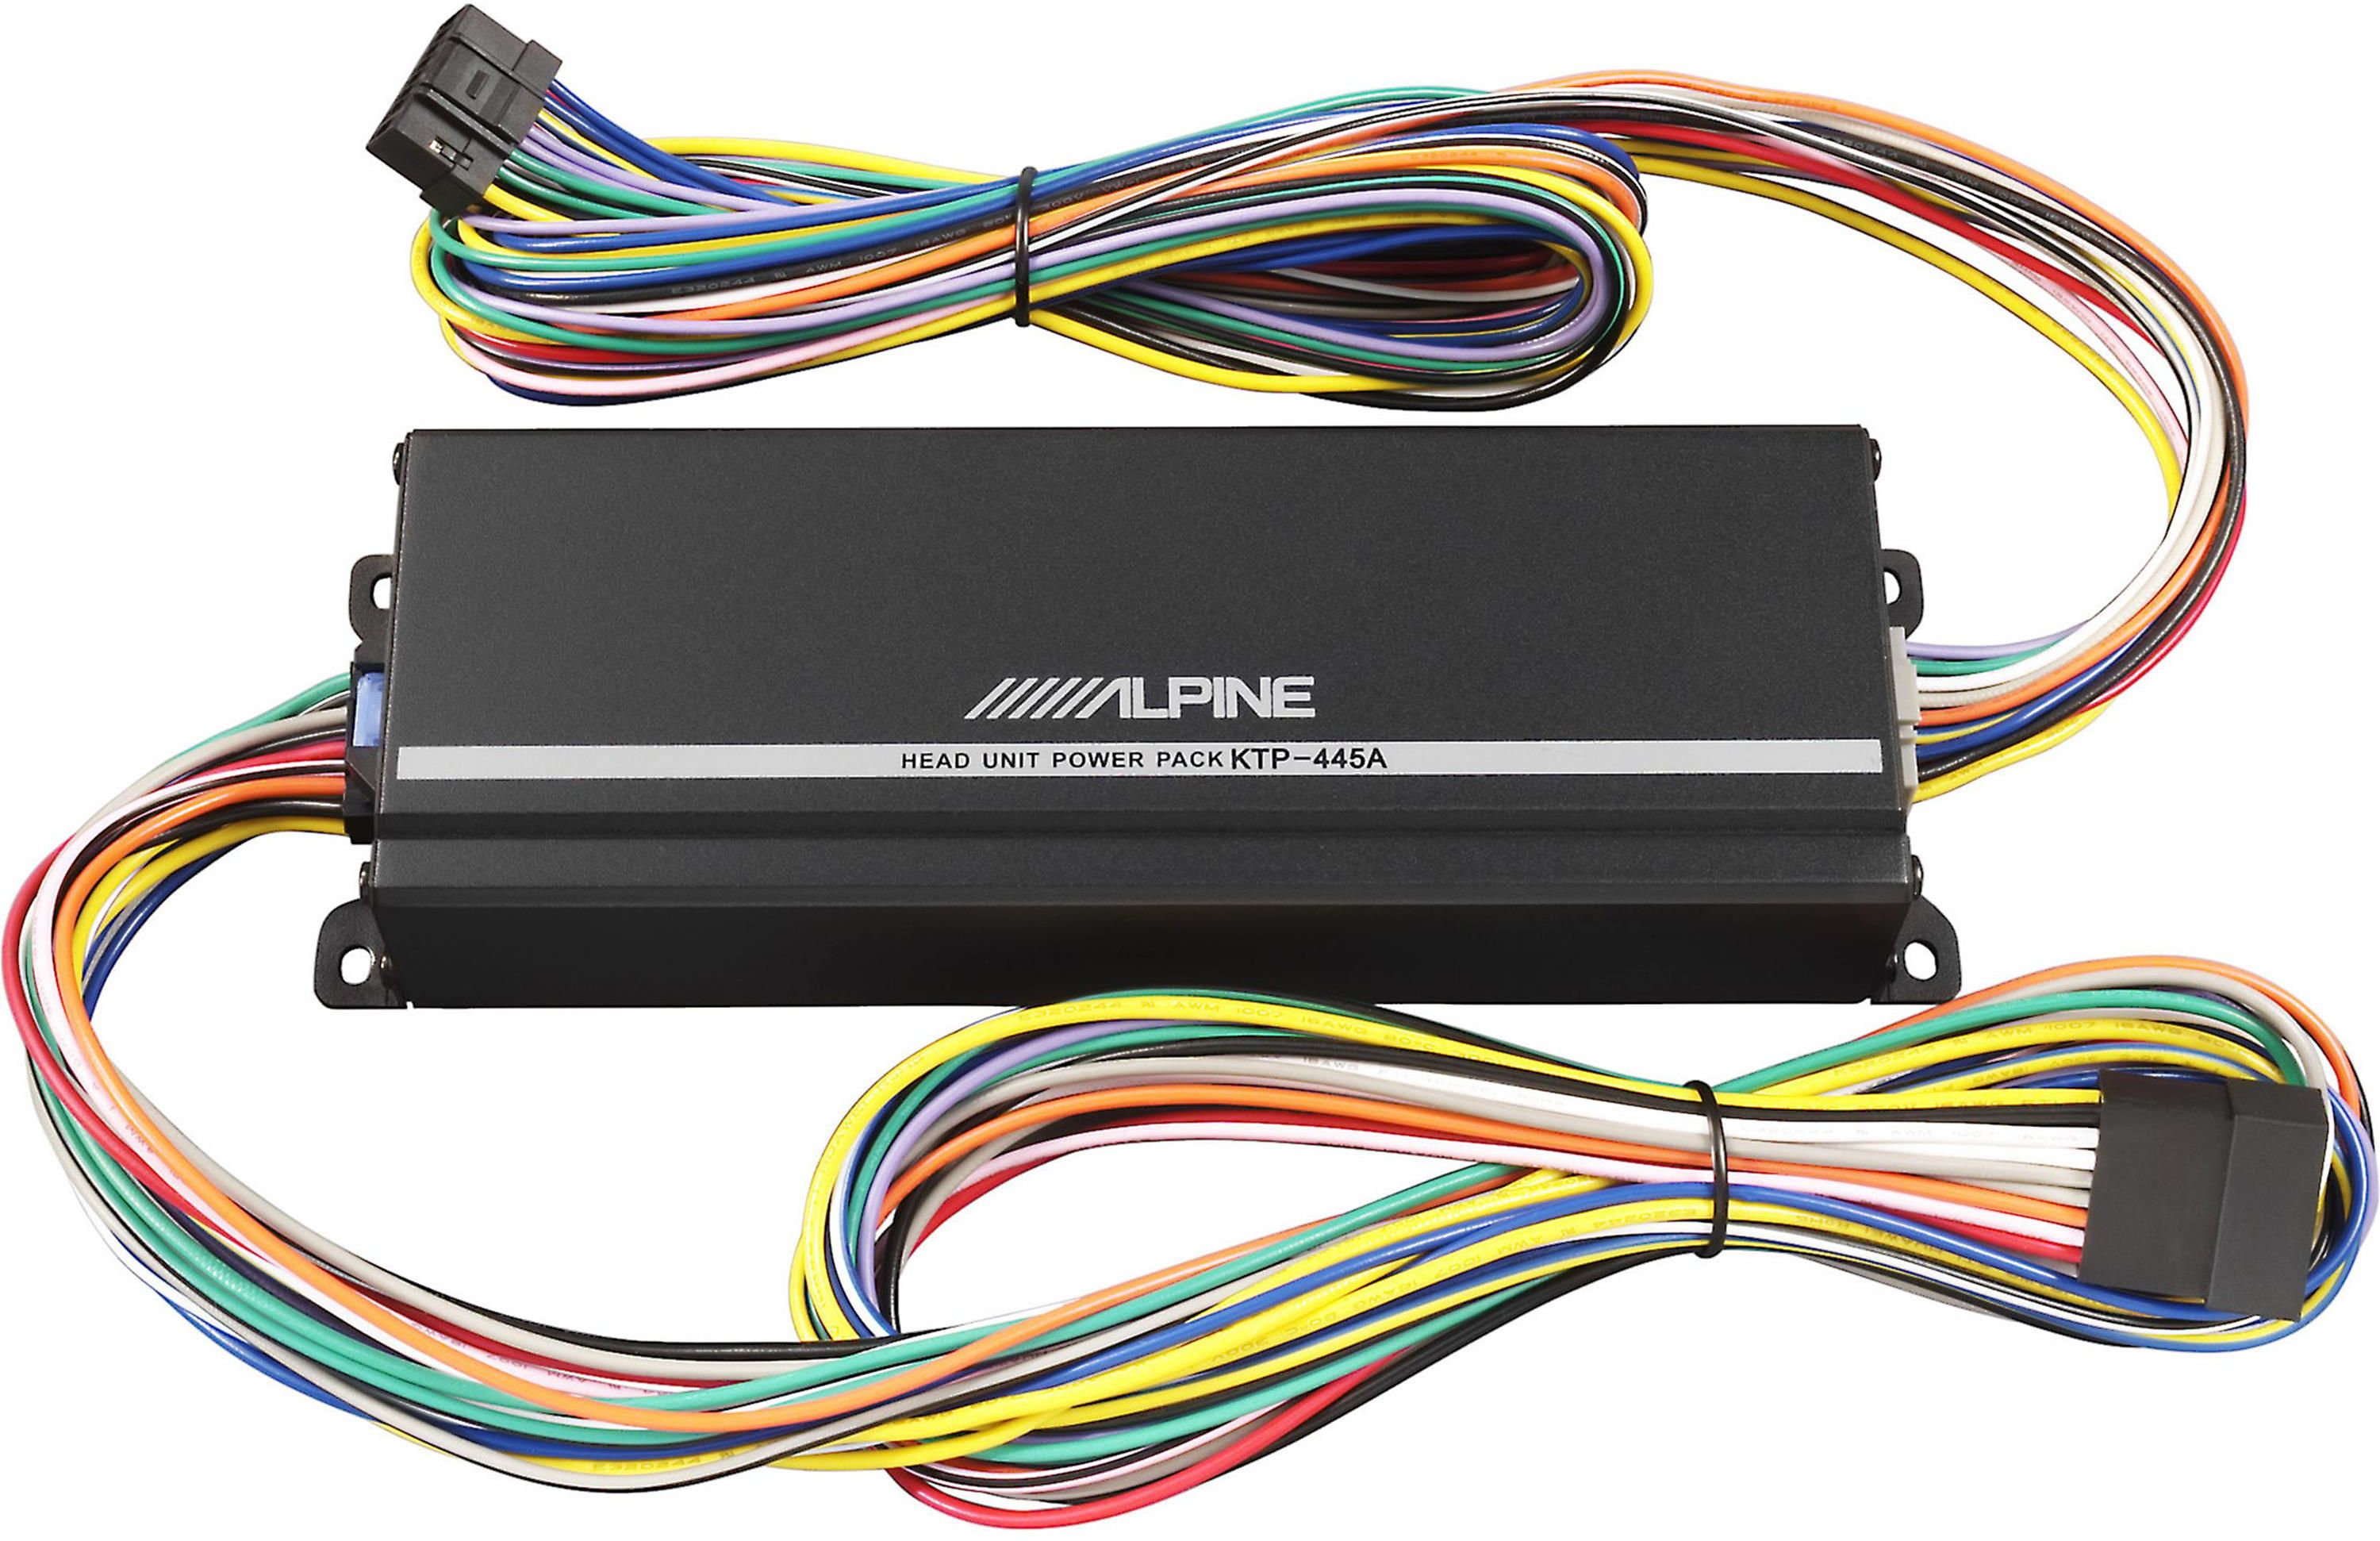 Alpine Ktp 445a Free Download Power Pack Wiring Diagram Amplifier Harness At